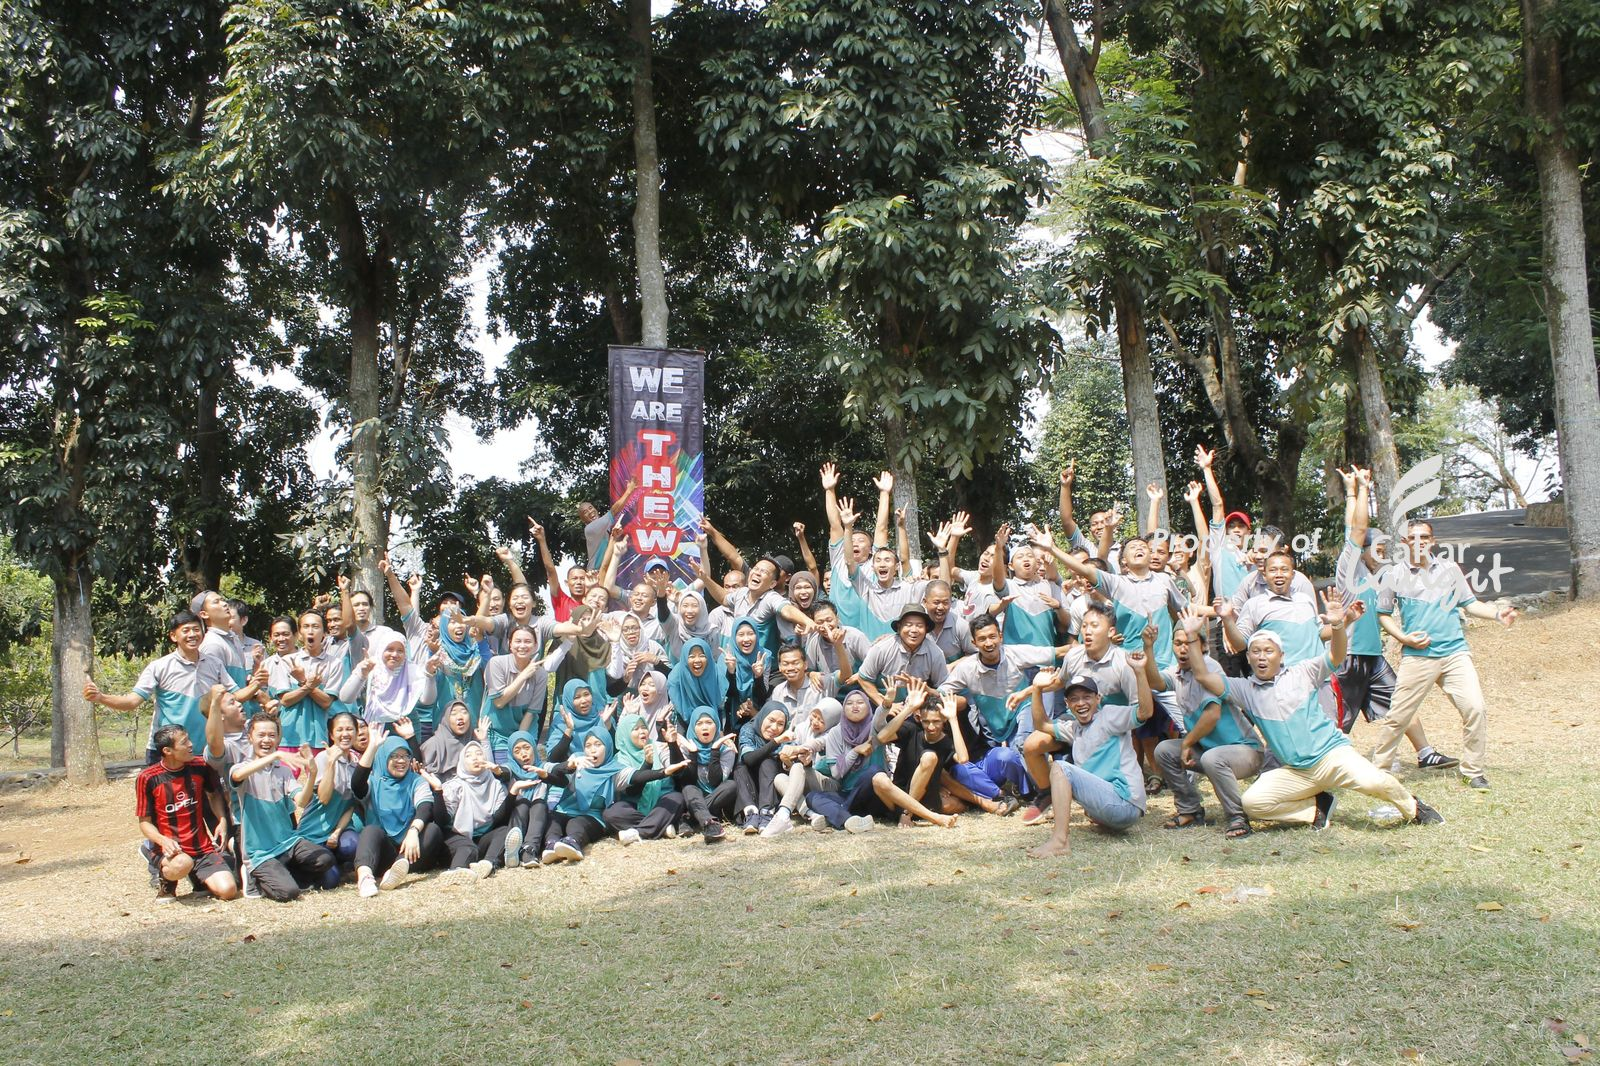 Outbound paling trend di Novotel Resort